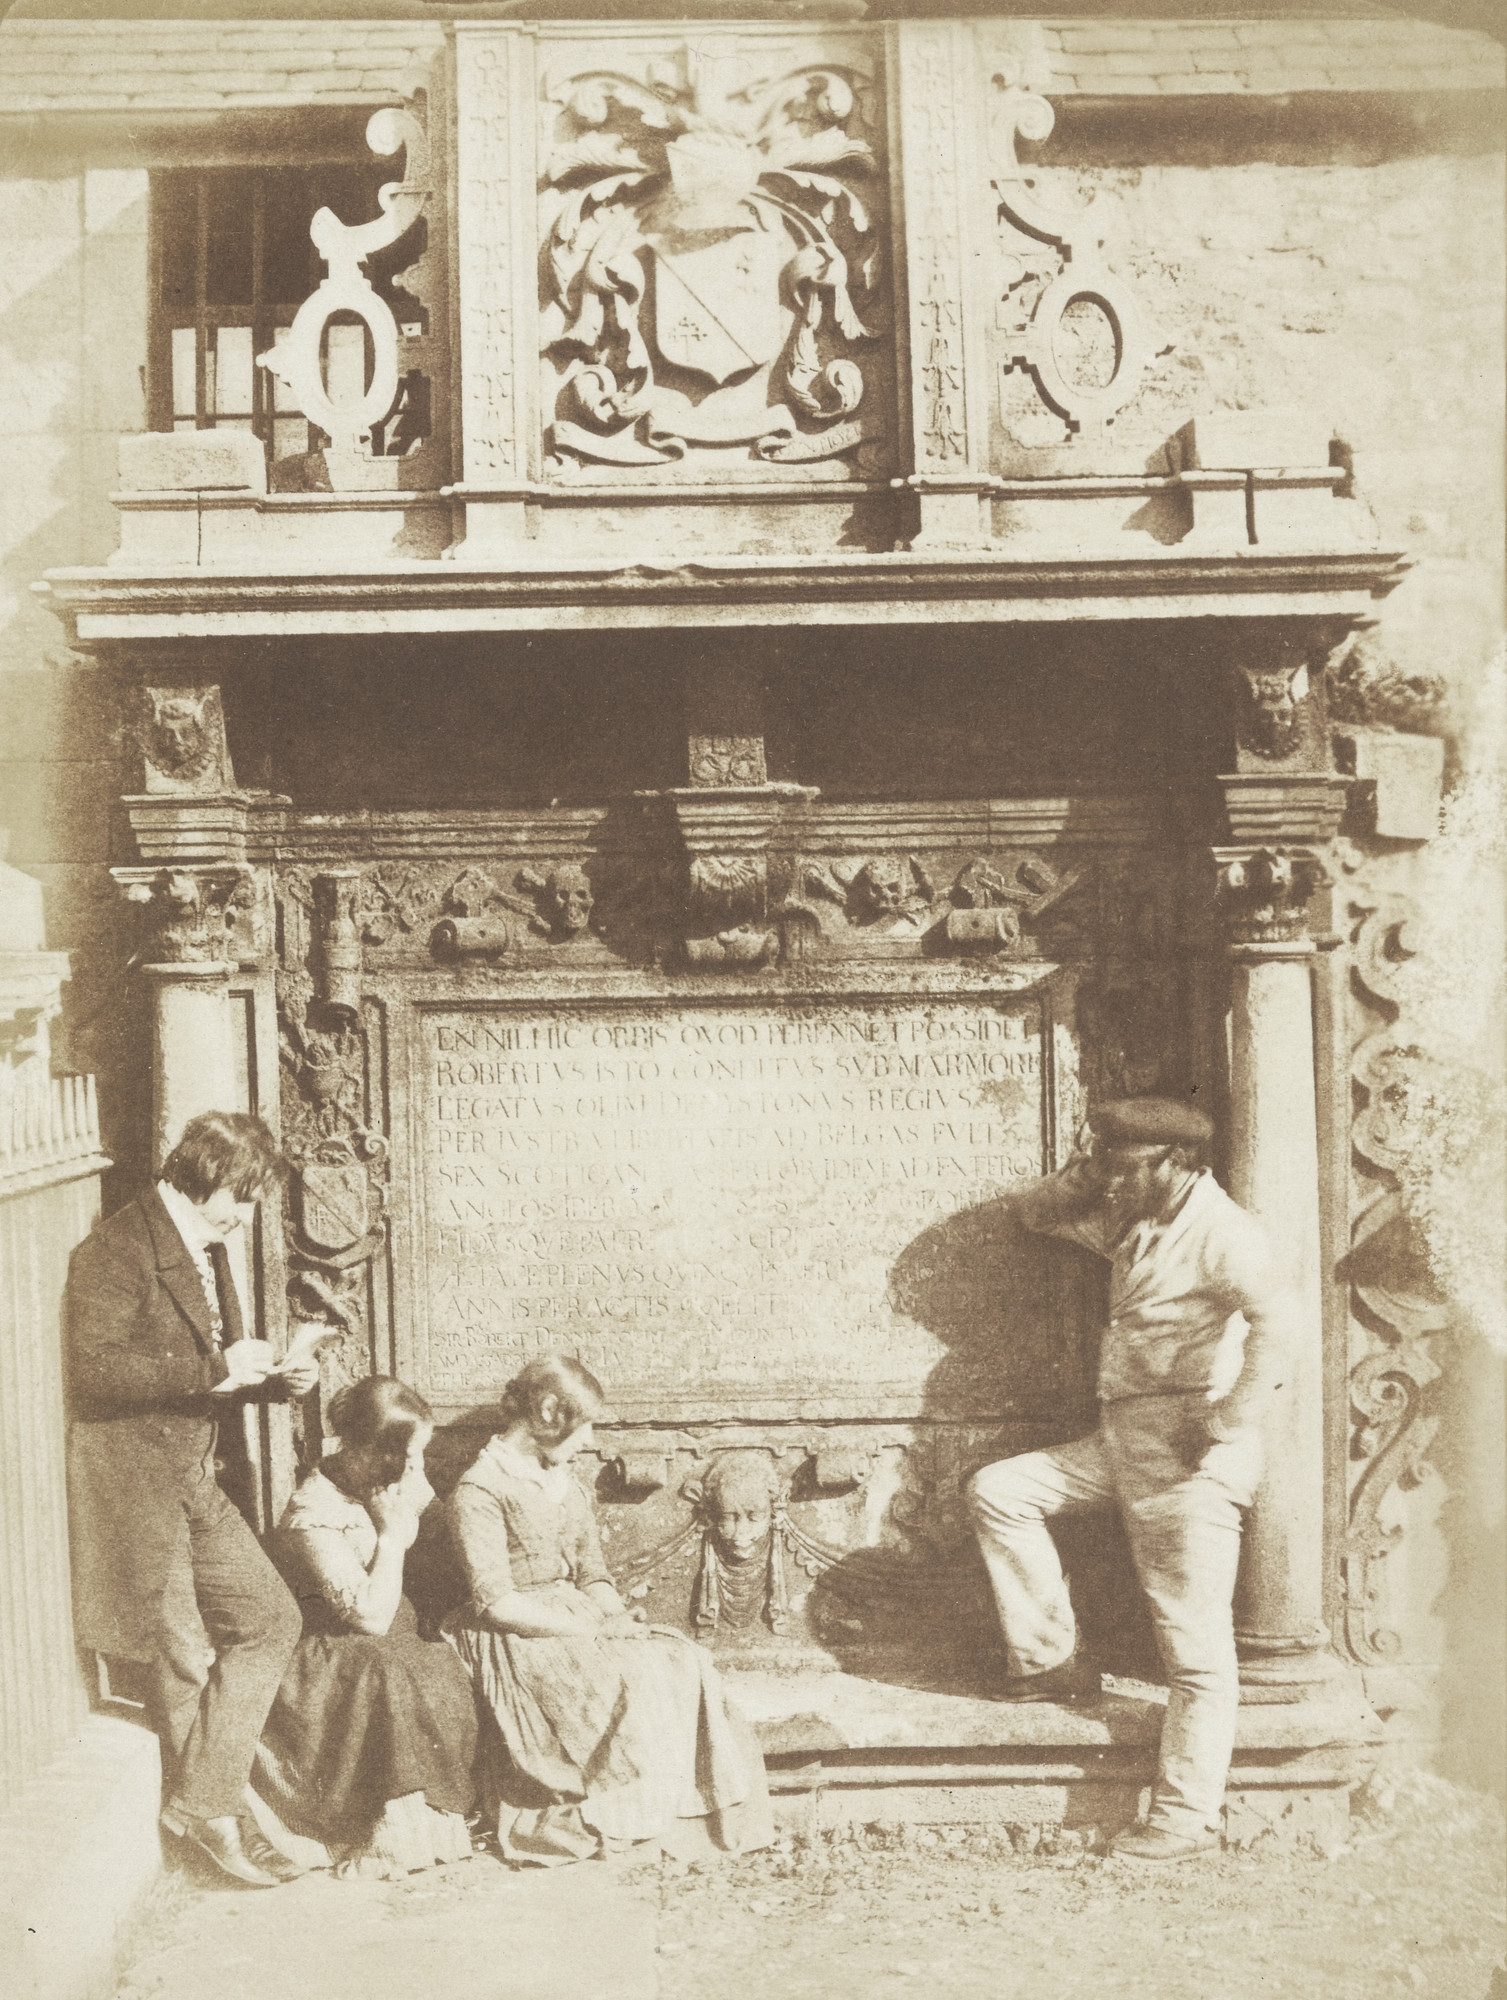 David Octavius Hill, Robert Adamson. D.O. Hill and others in Greyfriars Churchyard. c. 1841-48